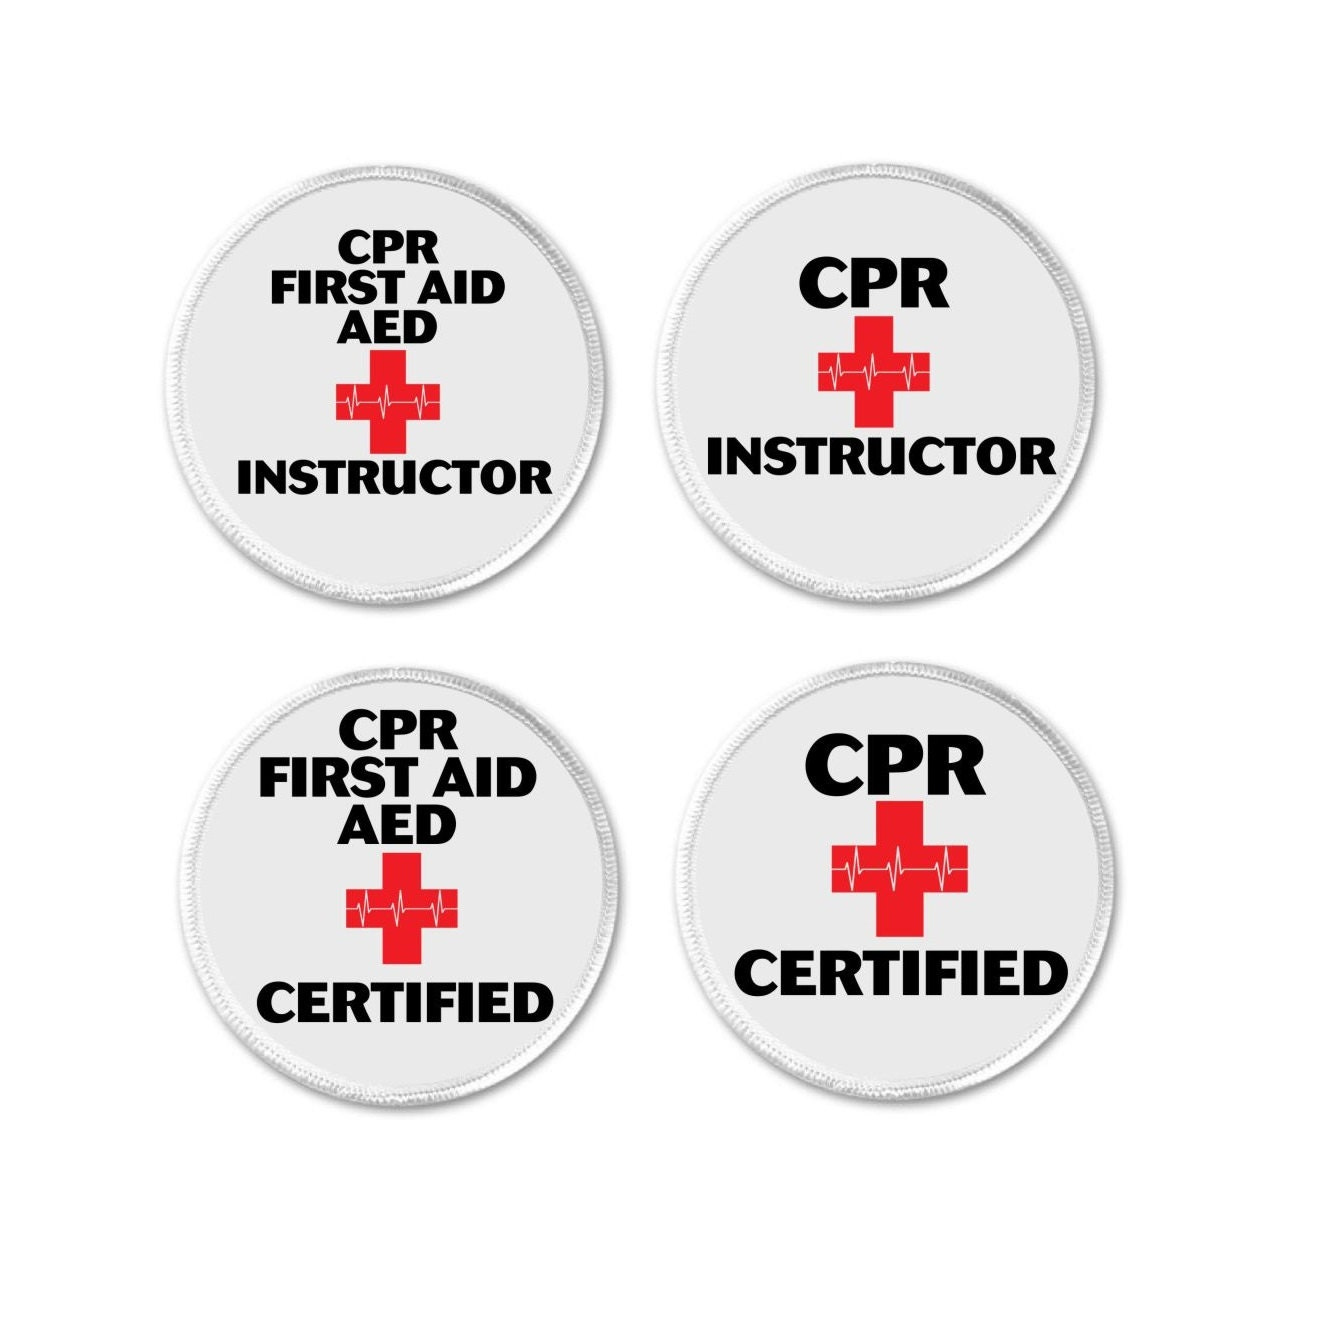 Cpr First Aid Aed Instructor Certified Medical Alert Symbol Etsy